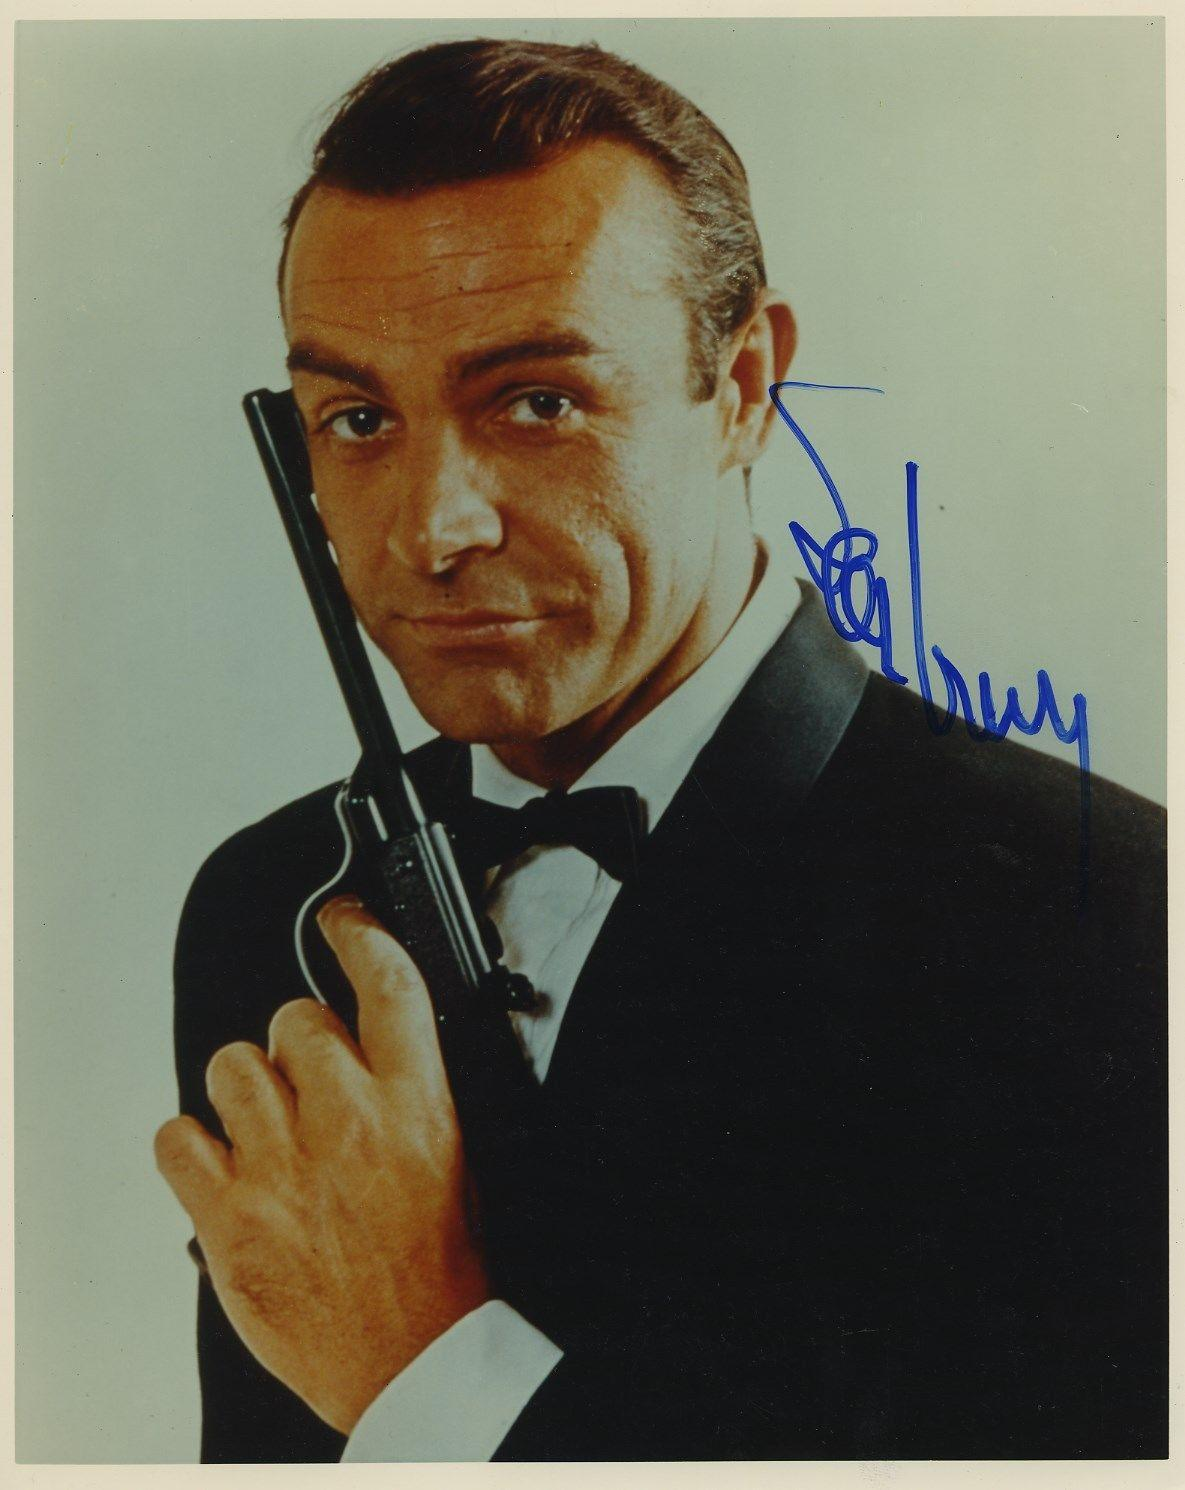 Sean Connery 007 James Bond Signed Autographed Color Photo Jsa Coa Rare!!